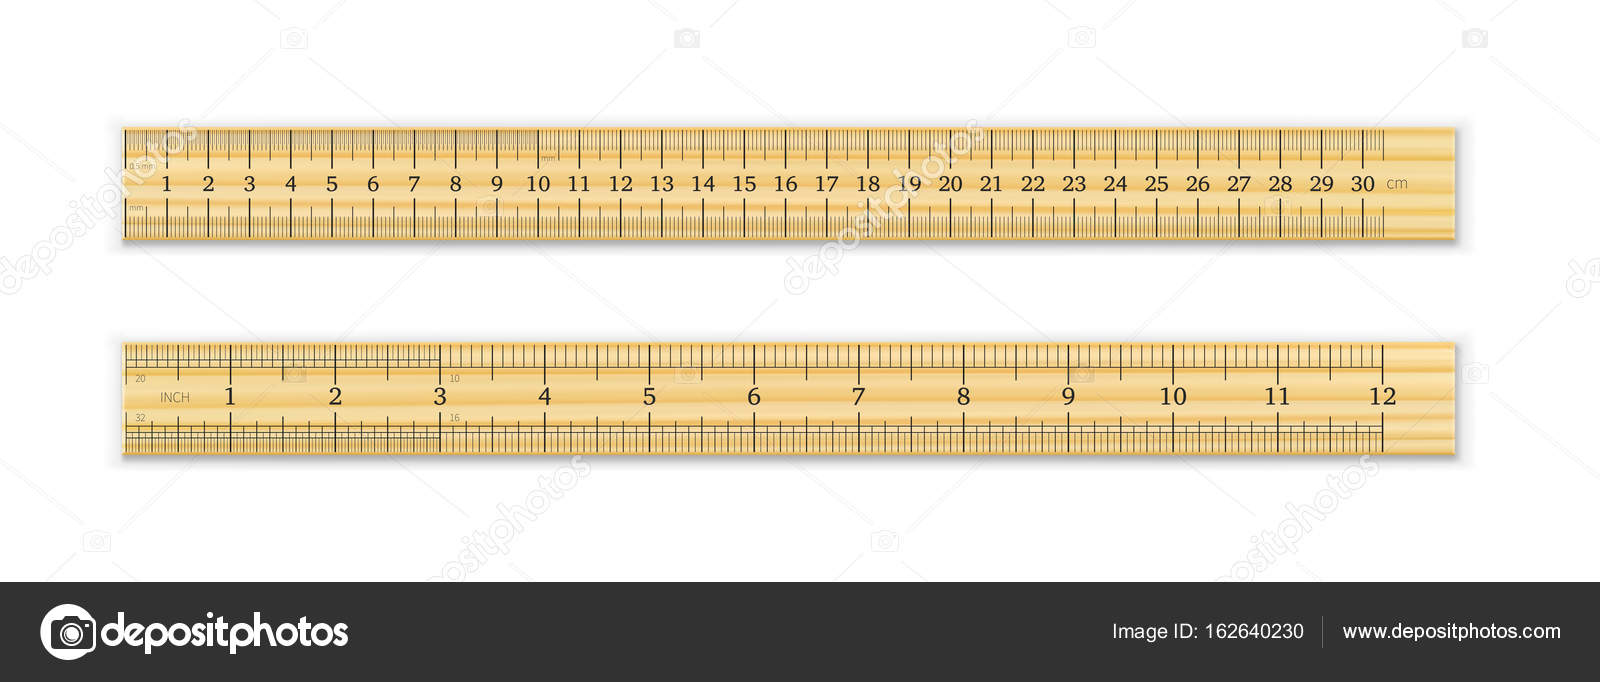 Picture A Ruler 12 Inches Realistic Metal Ruler Of 30 Centimeters And A Metal Ruler Of 12 Inches Stock Vector C Ivn3da 162640230